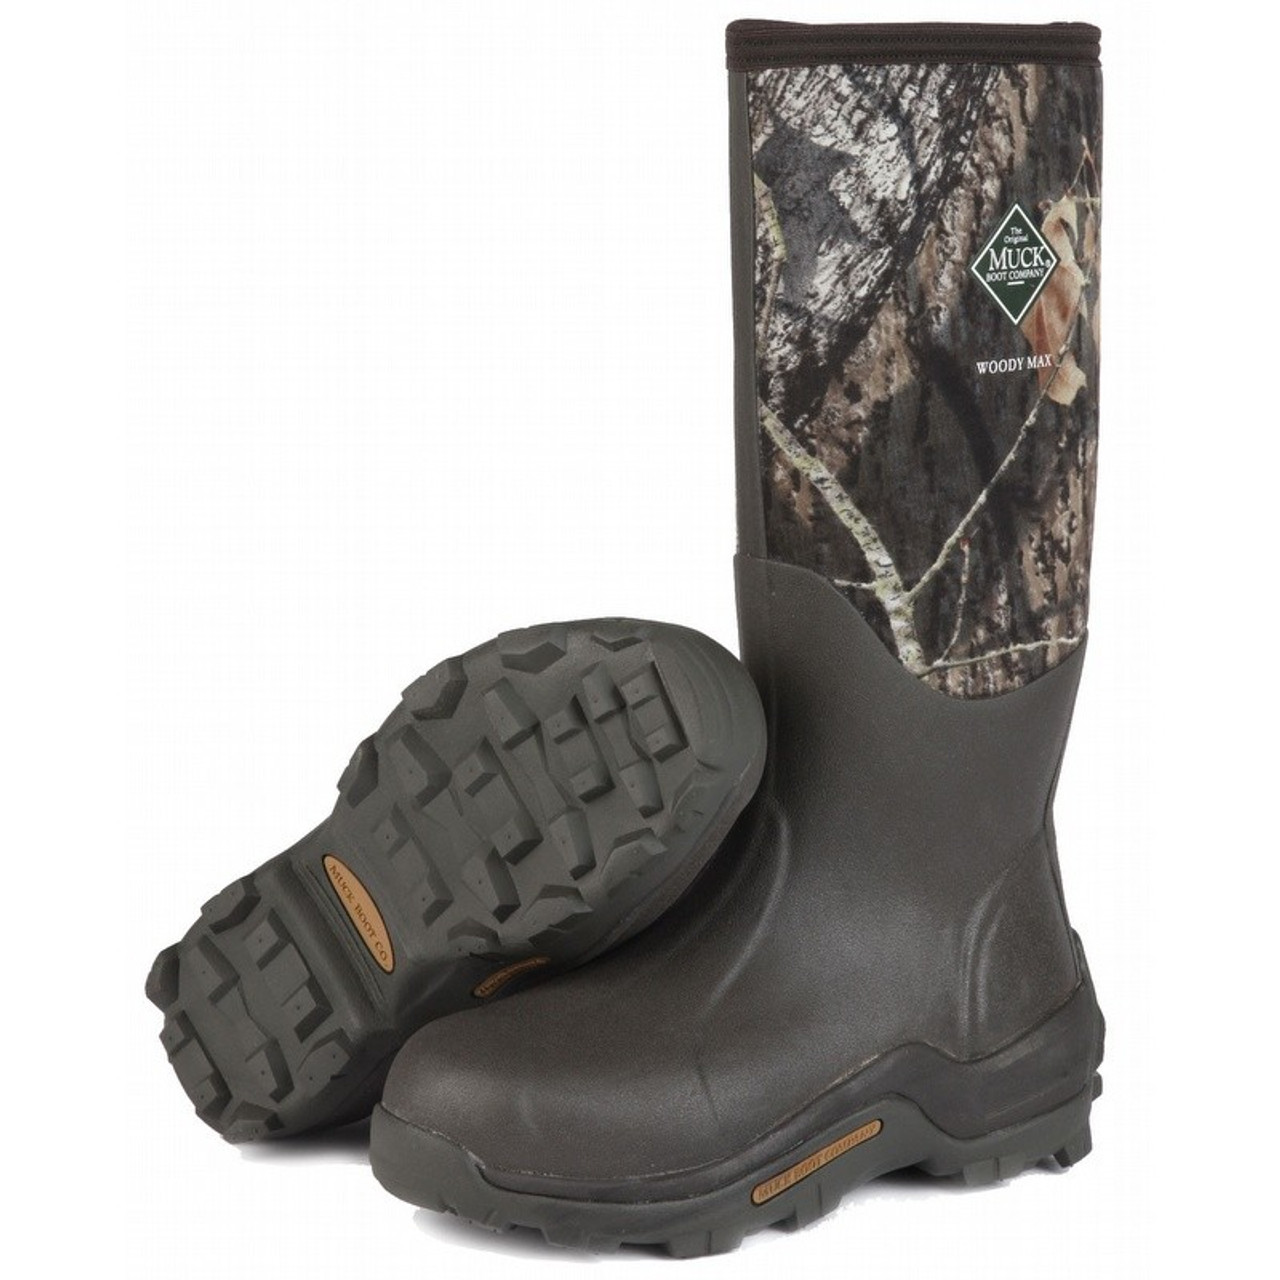 0d019ae3560 Muck Boots Woody Max